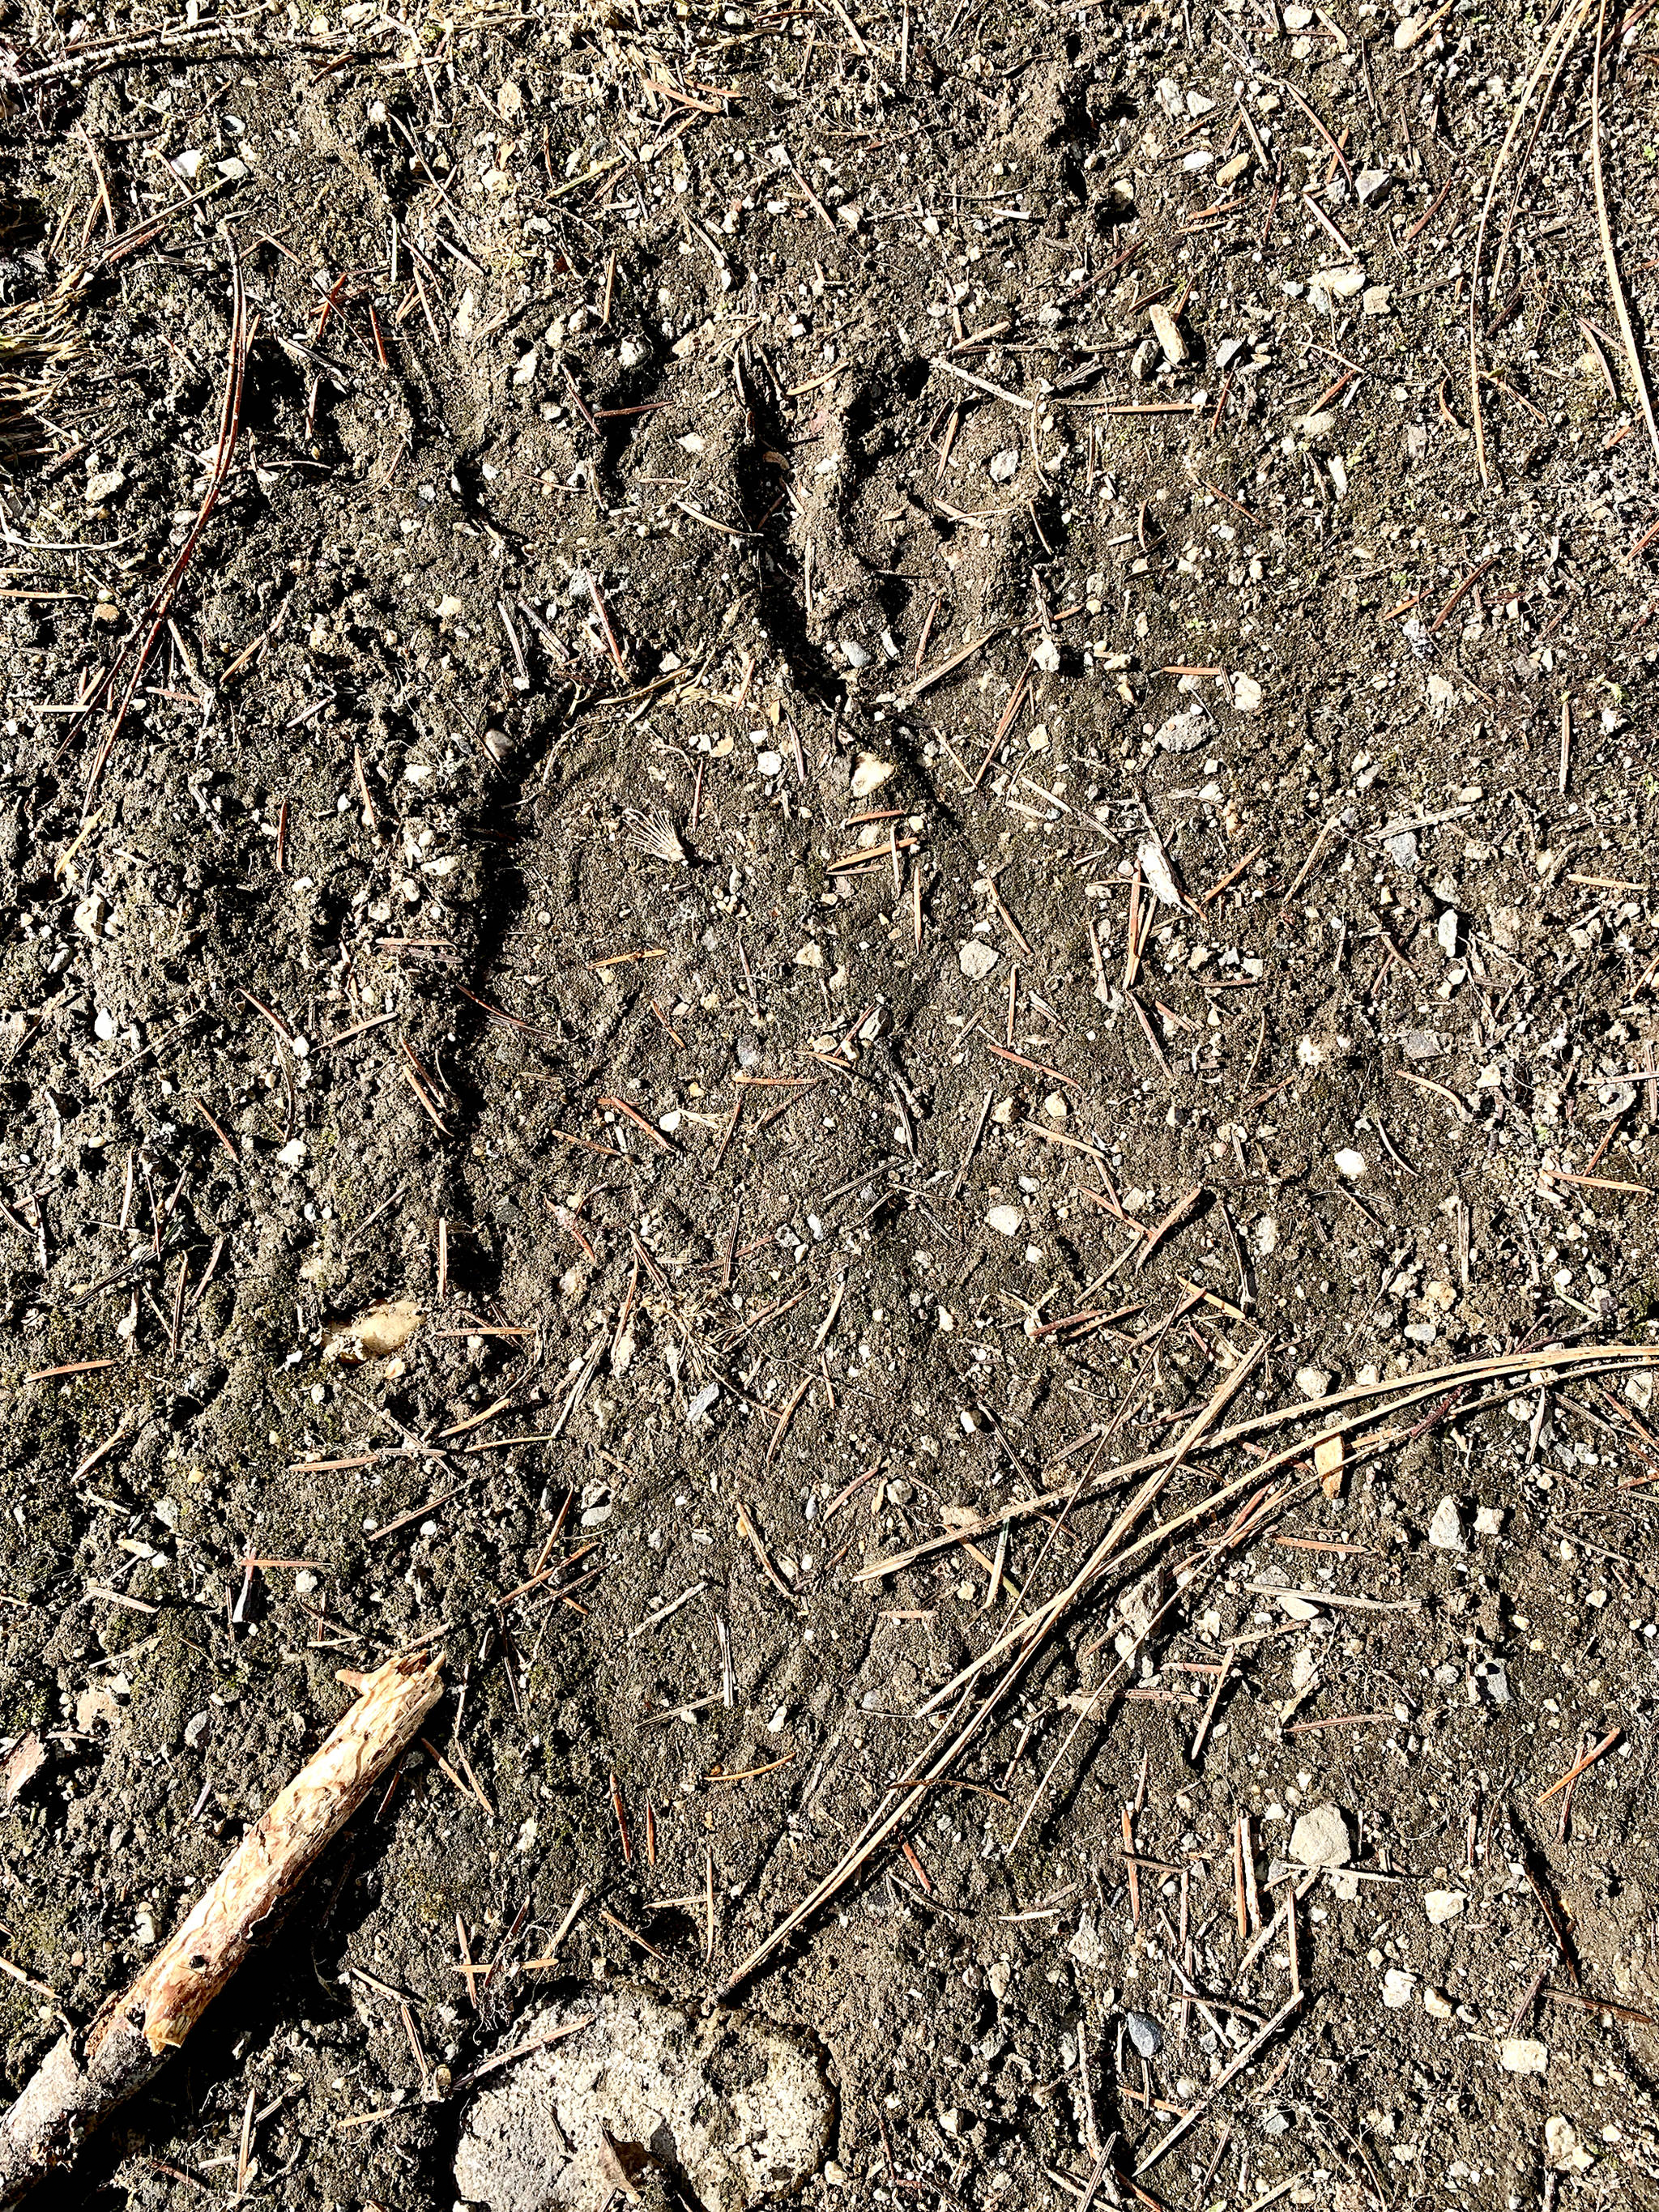 A large footprint spotted near Shuswap Falls over the Easter weekend is being examined by wildlife experts. (Sarah McRann photo)